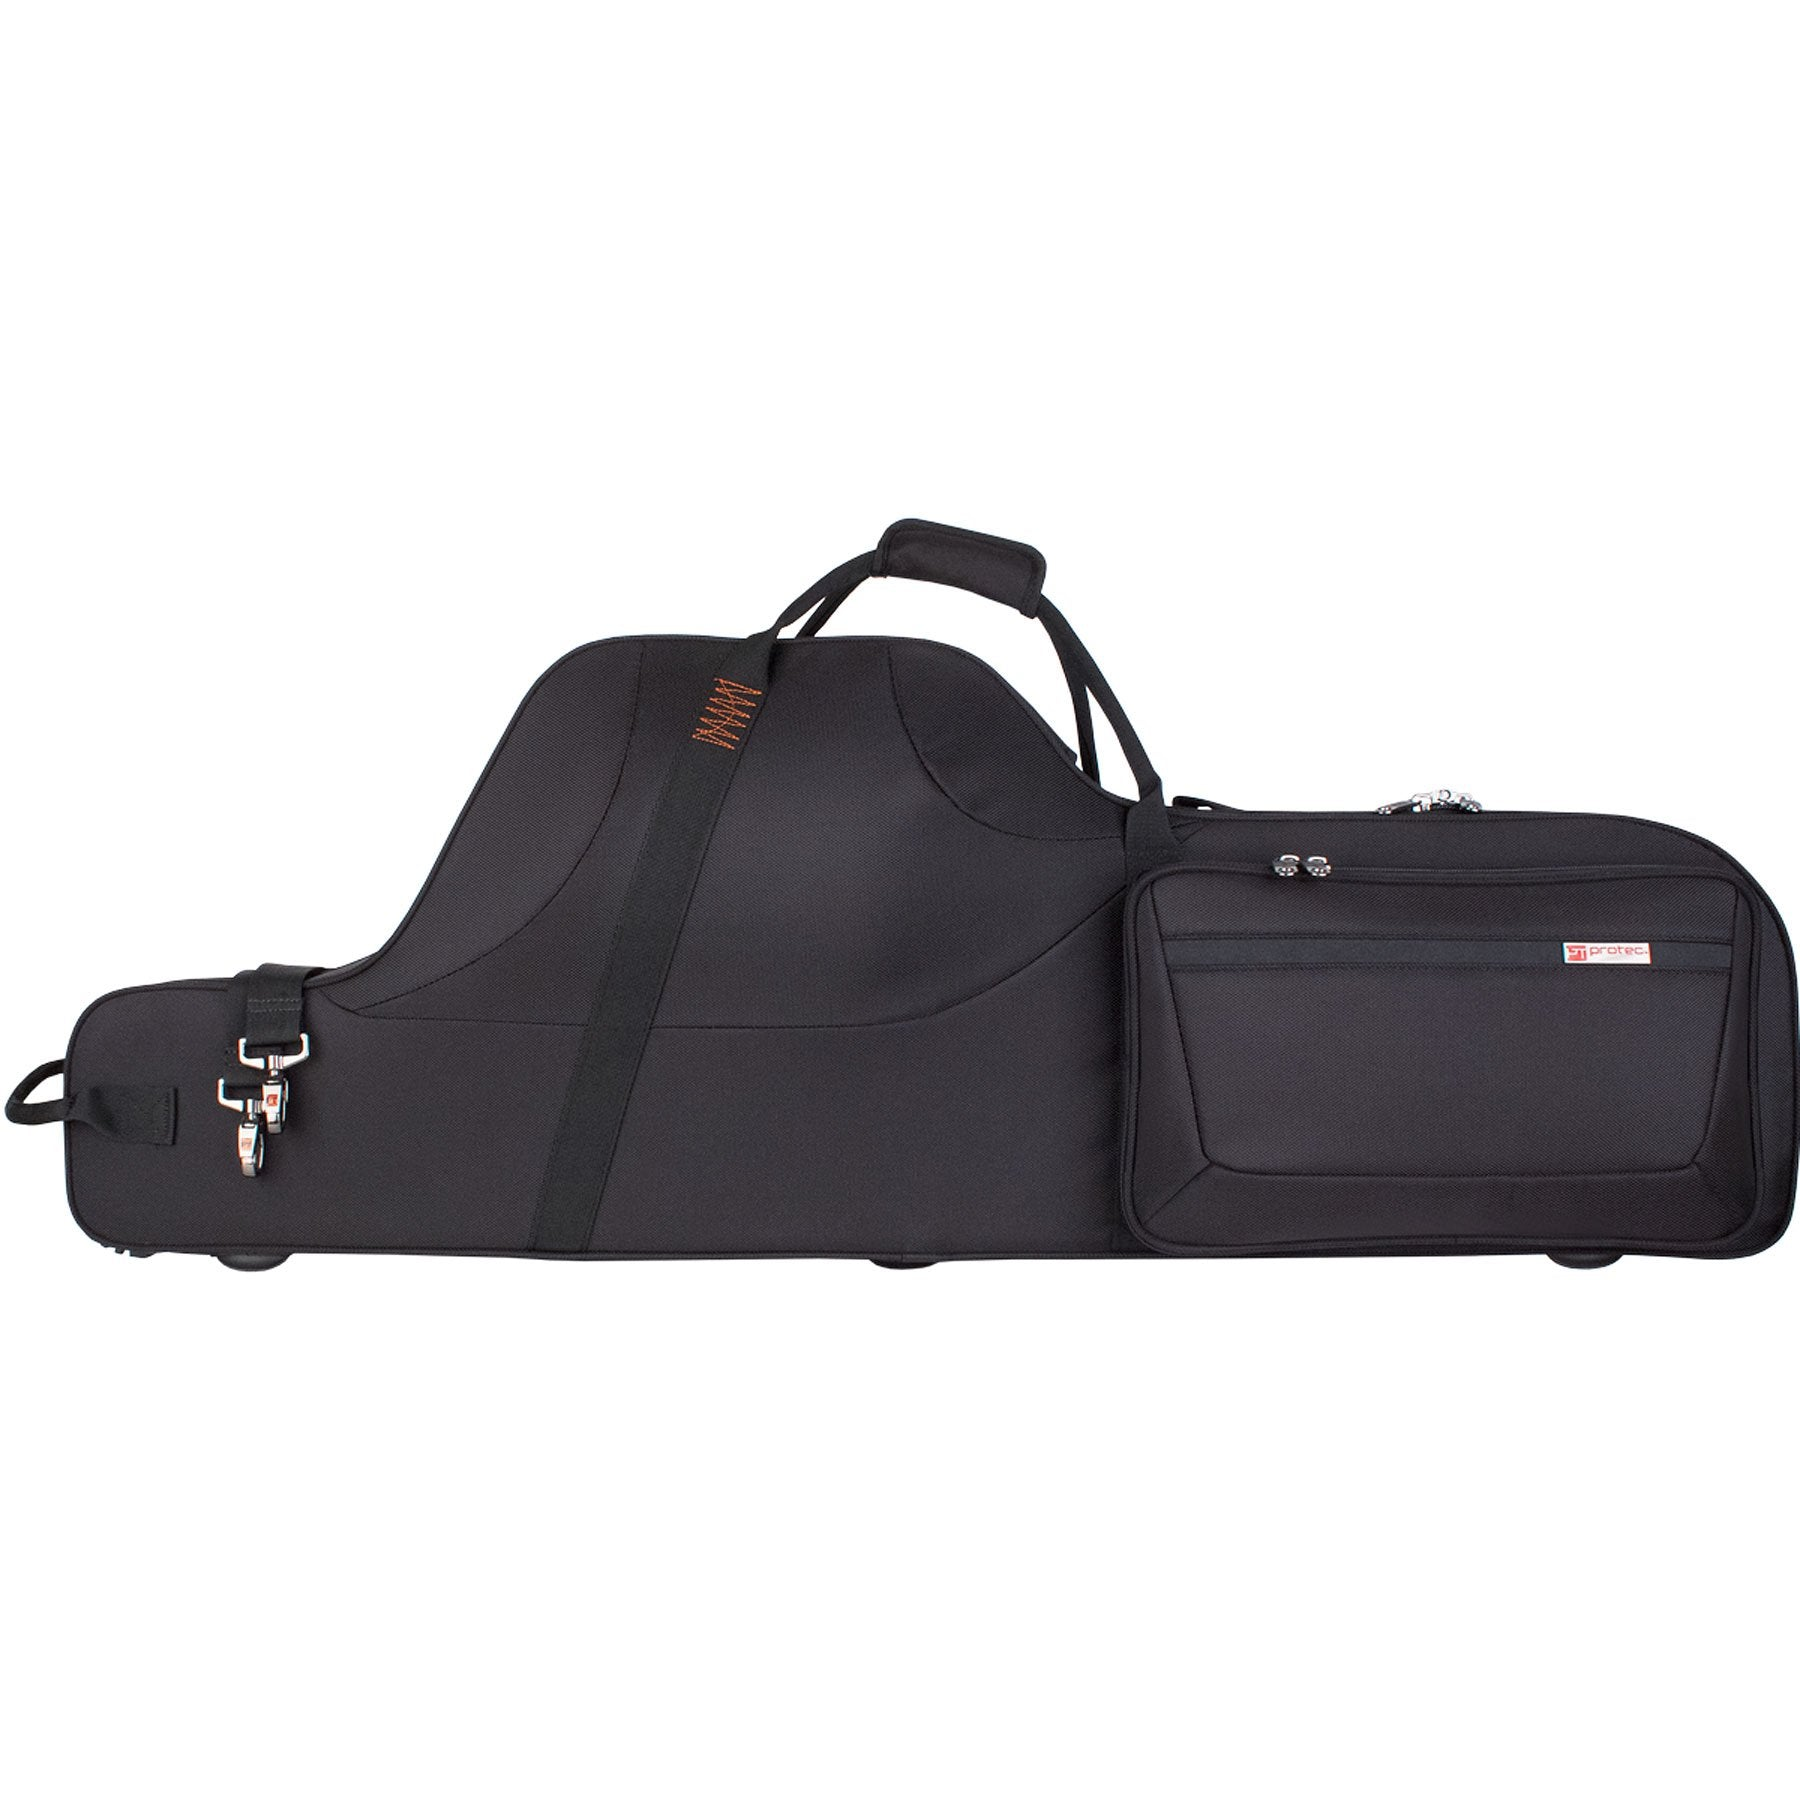 Protec - Baritone Low A & Bb Saxophone PRO PAC Case (Contoured)-Accessories-Protec-Music Elements